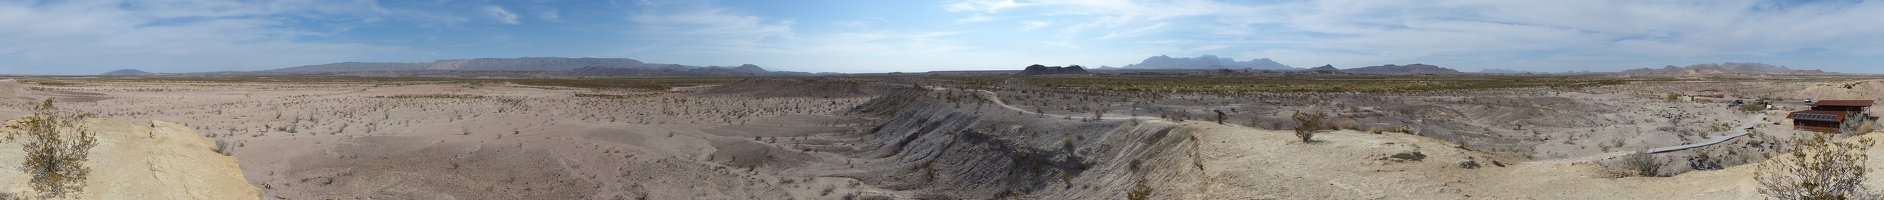 Tornillo Flats panoramic